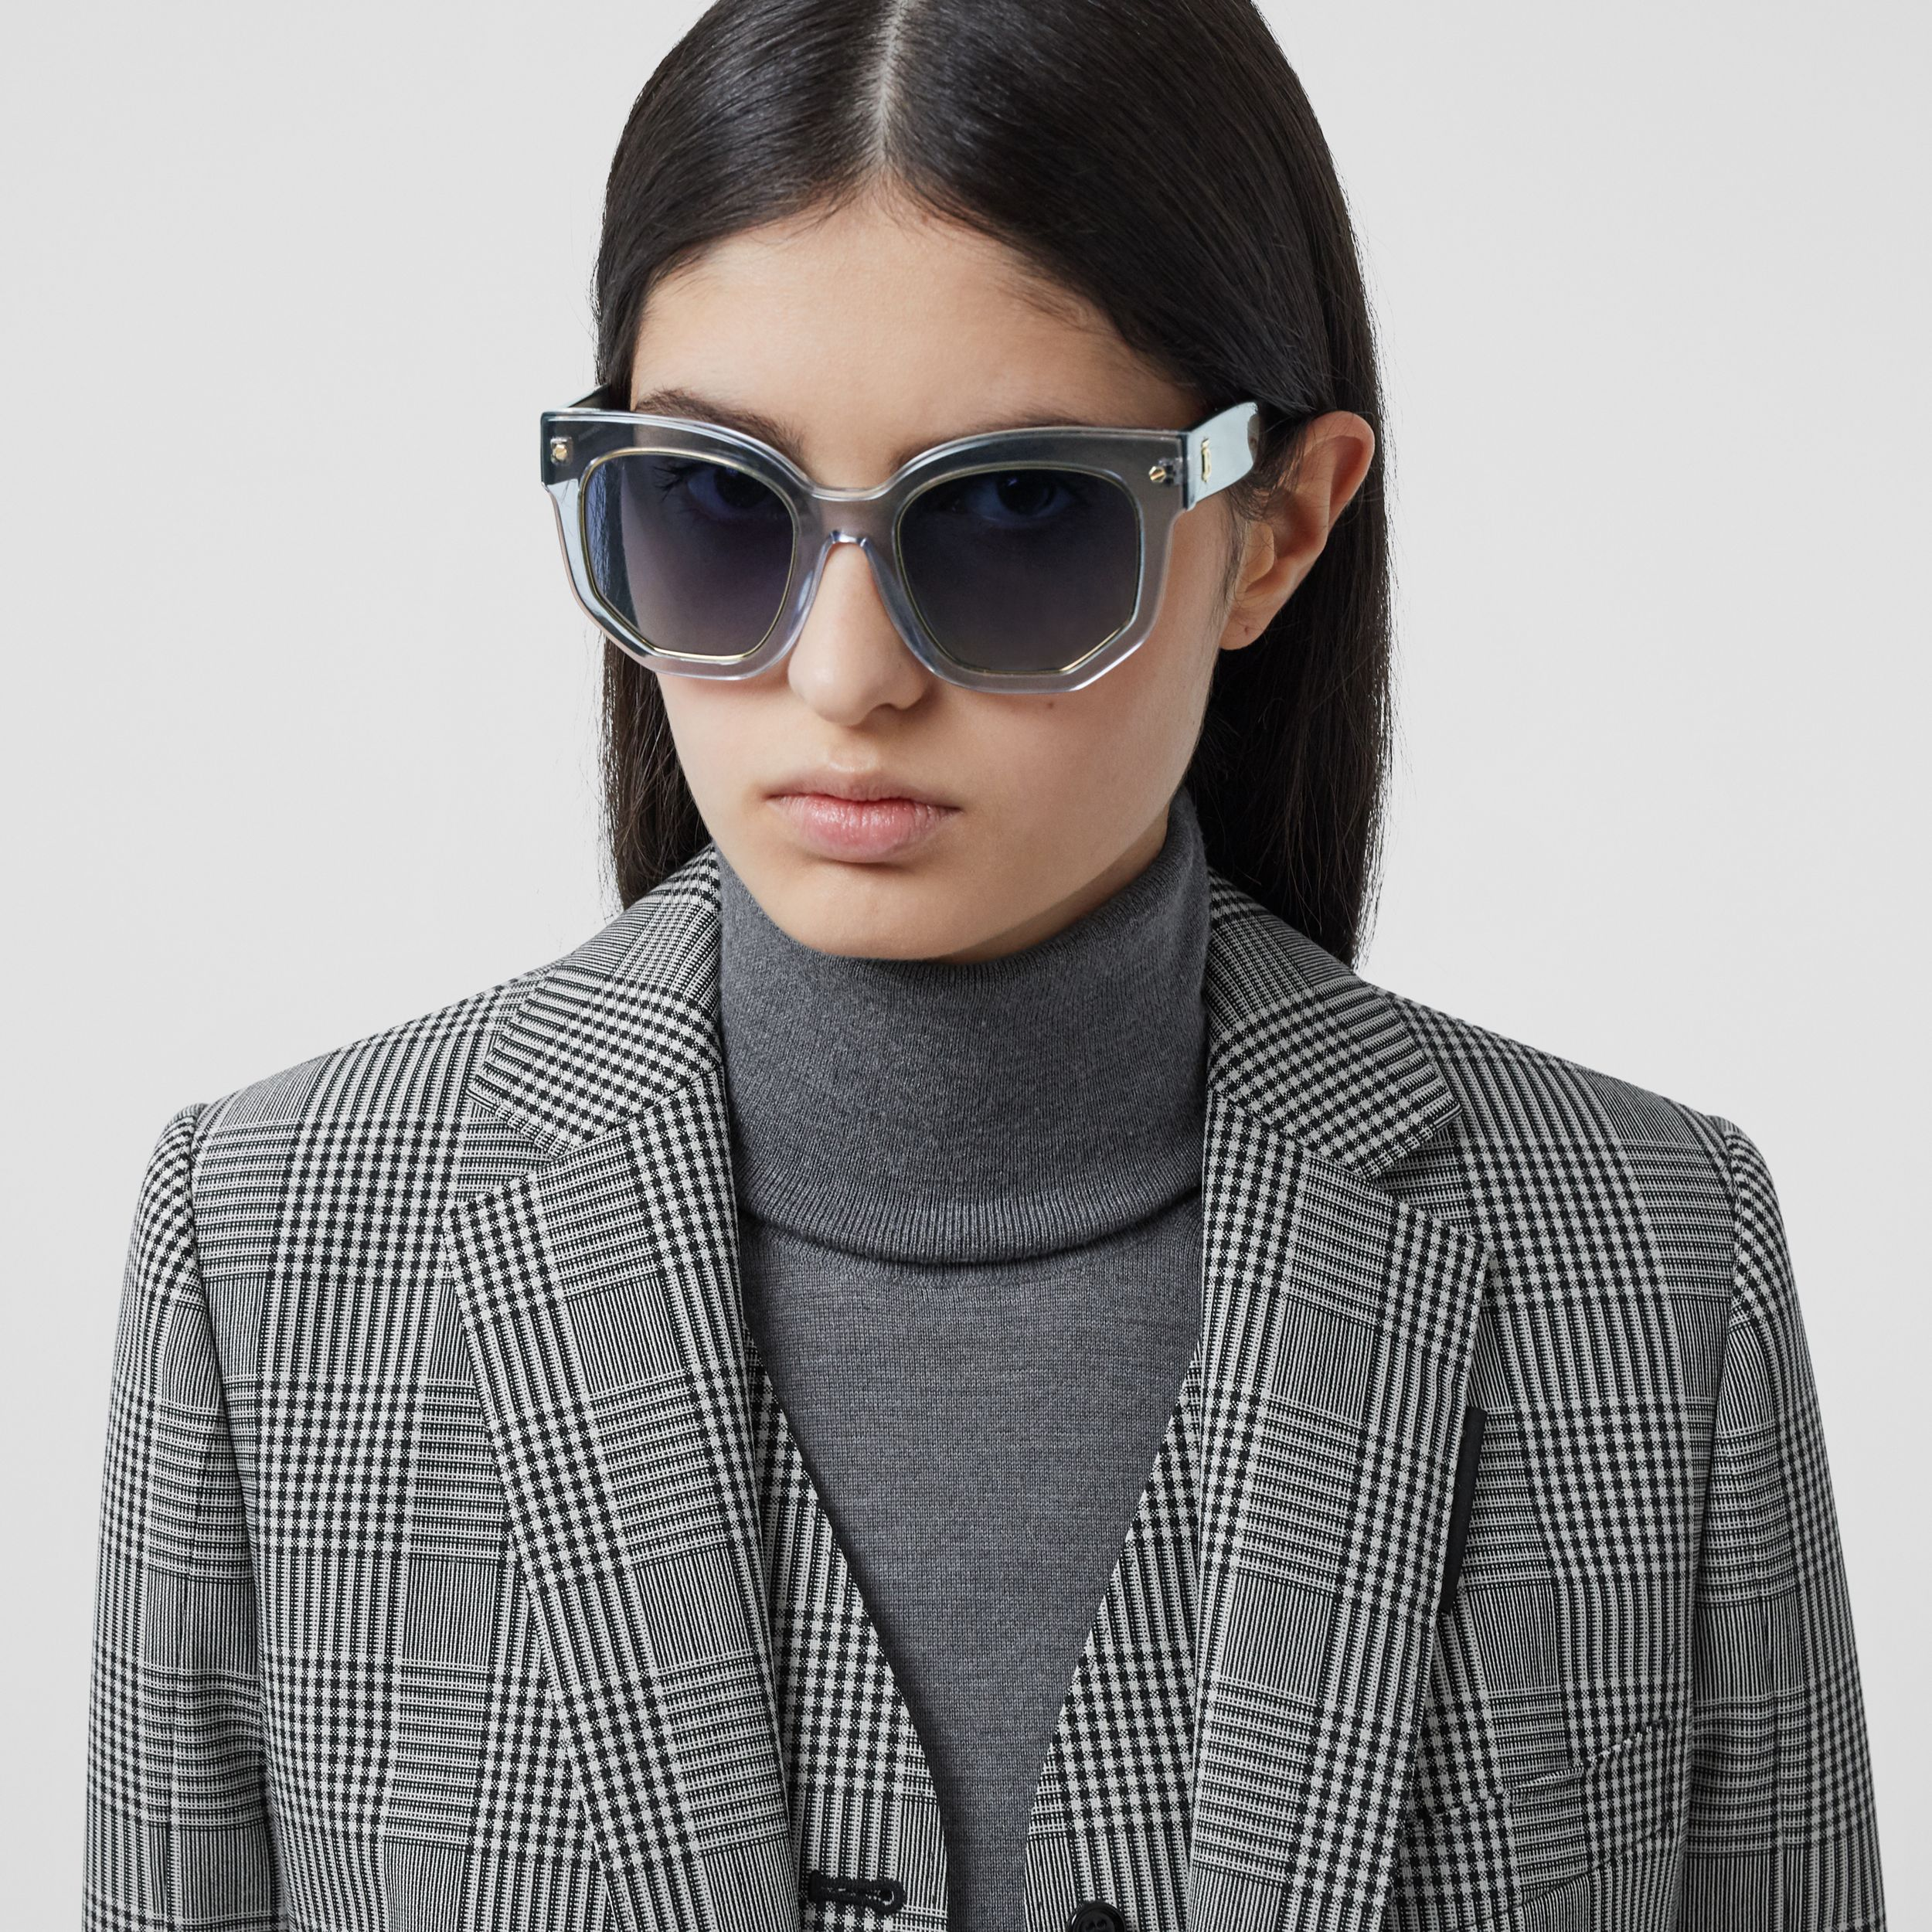 Geometric Frame Sunglasses in Grey - Women | Burberry - 3